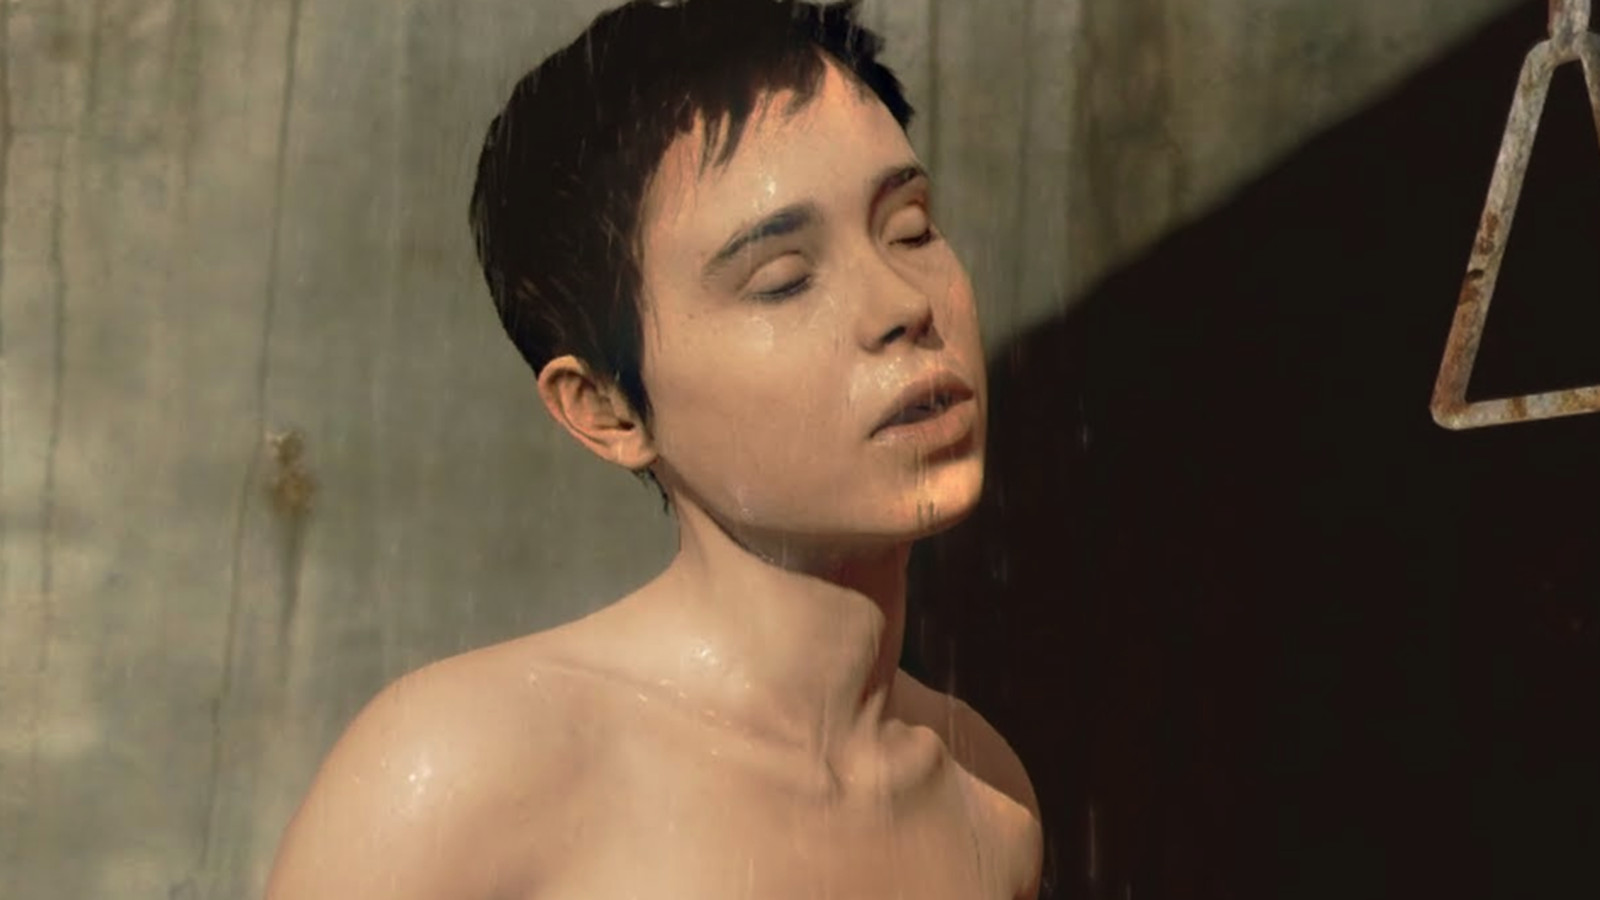 Report: Sony cracking down on Beyond: Two Souls nude leak